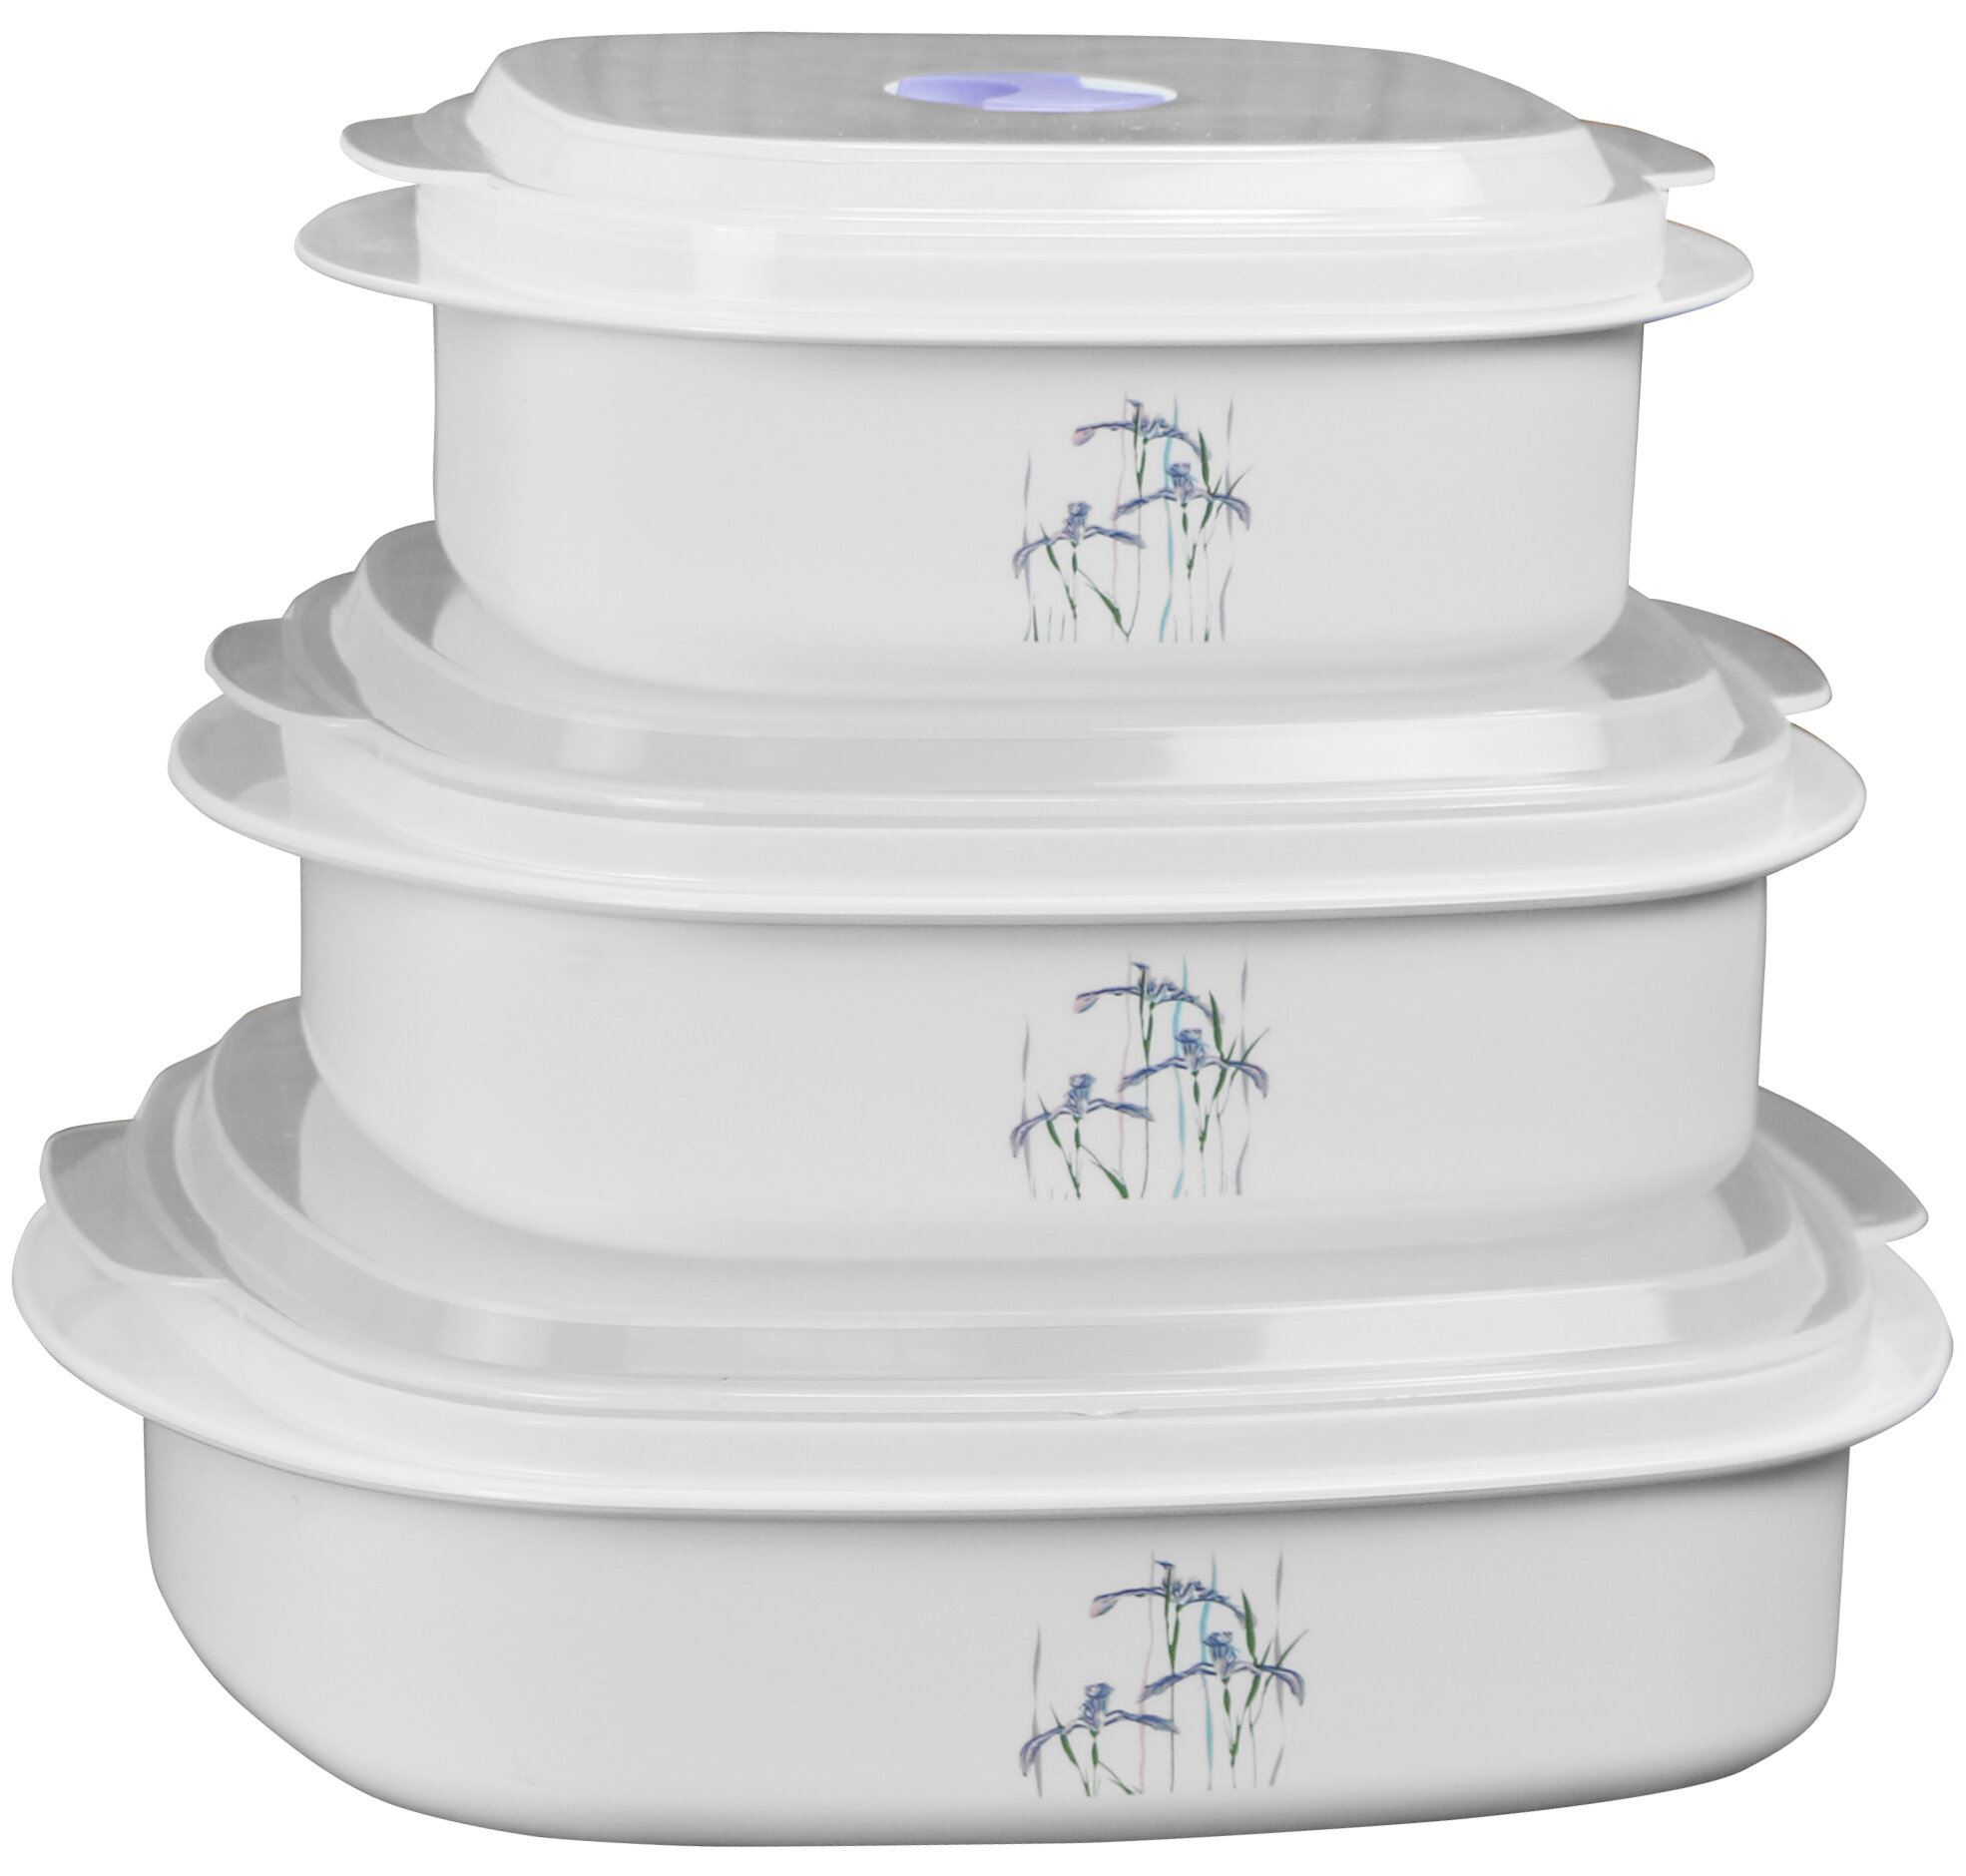 Corelle Coordinates Microwave Cookware 3 Container Food Storage Set Reviews Wayfair